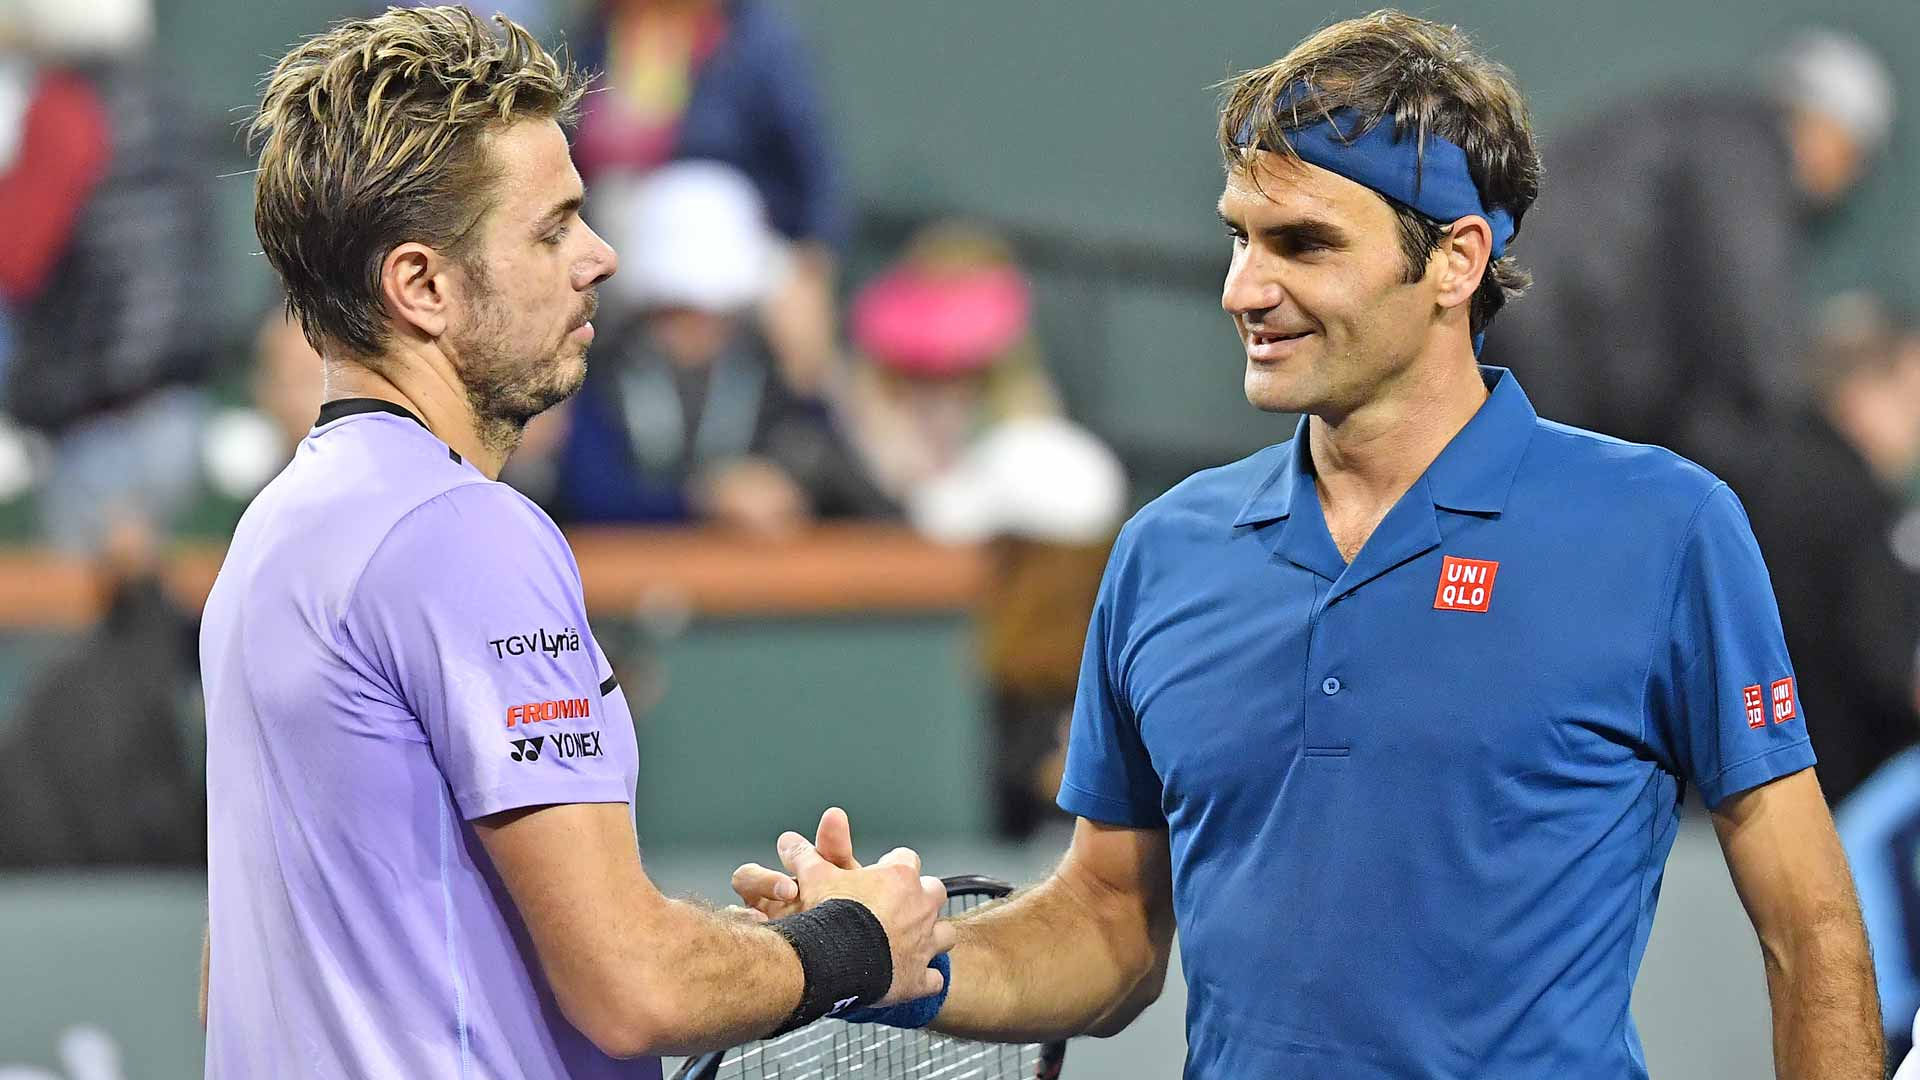 Stan Wawrinka loses to Roger Federer in Indian Wells